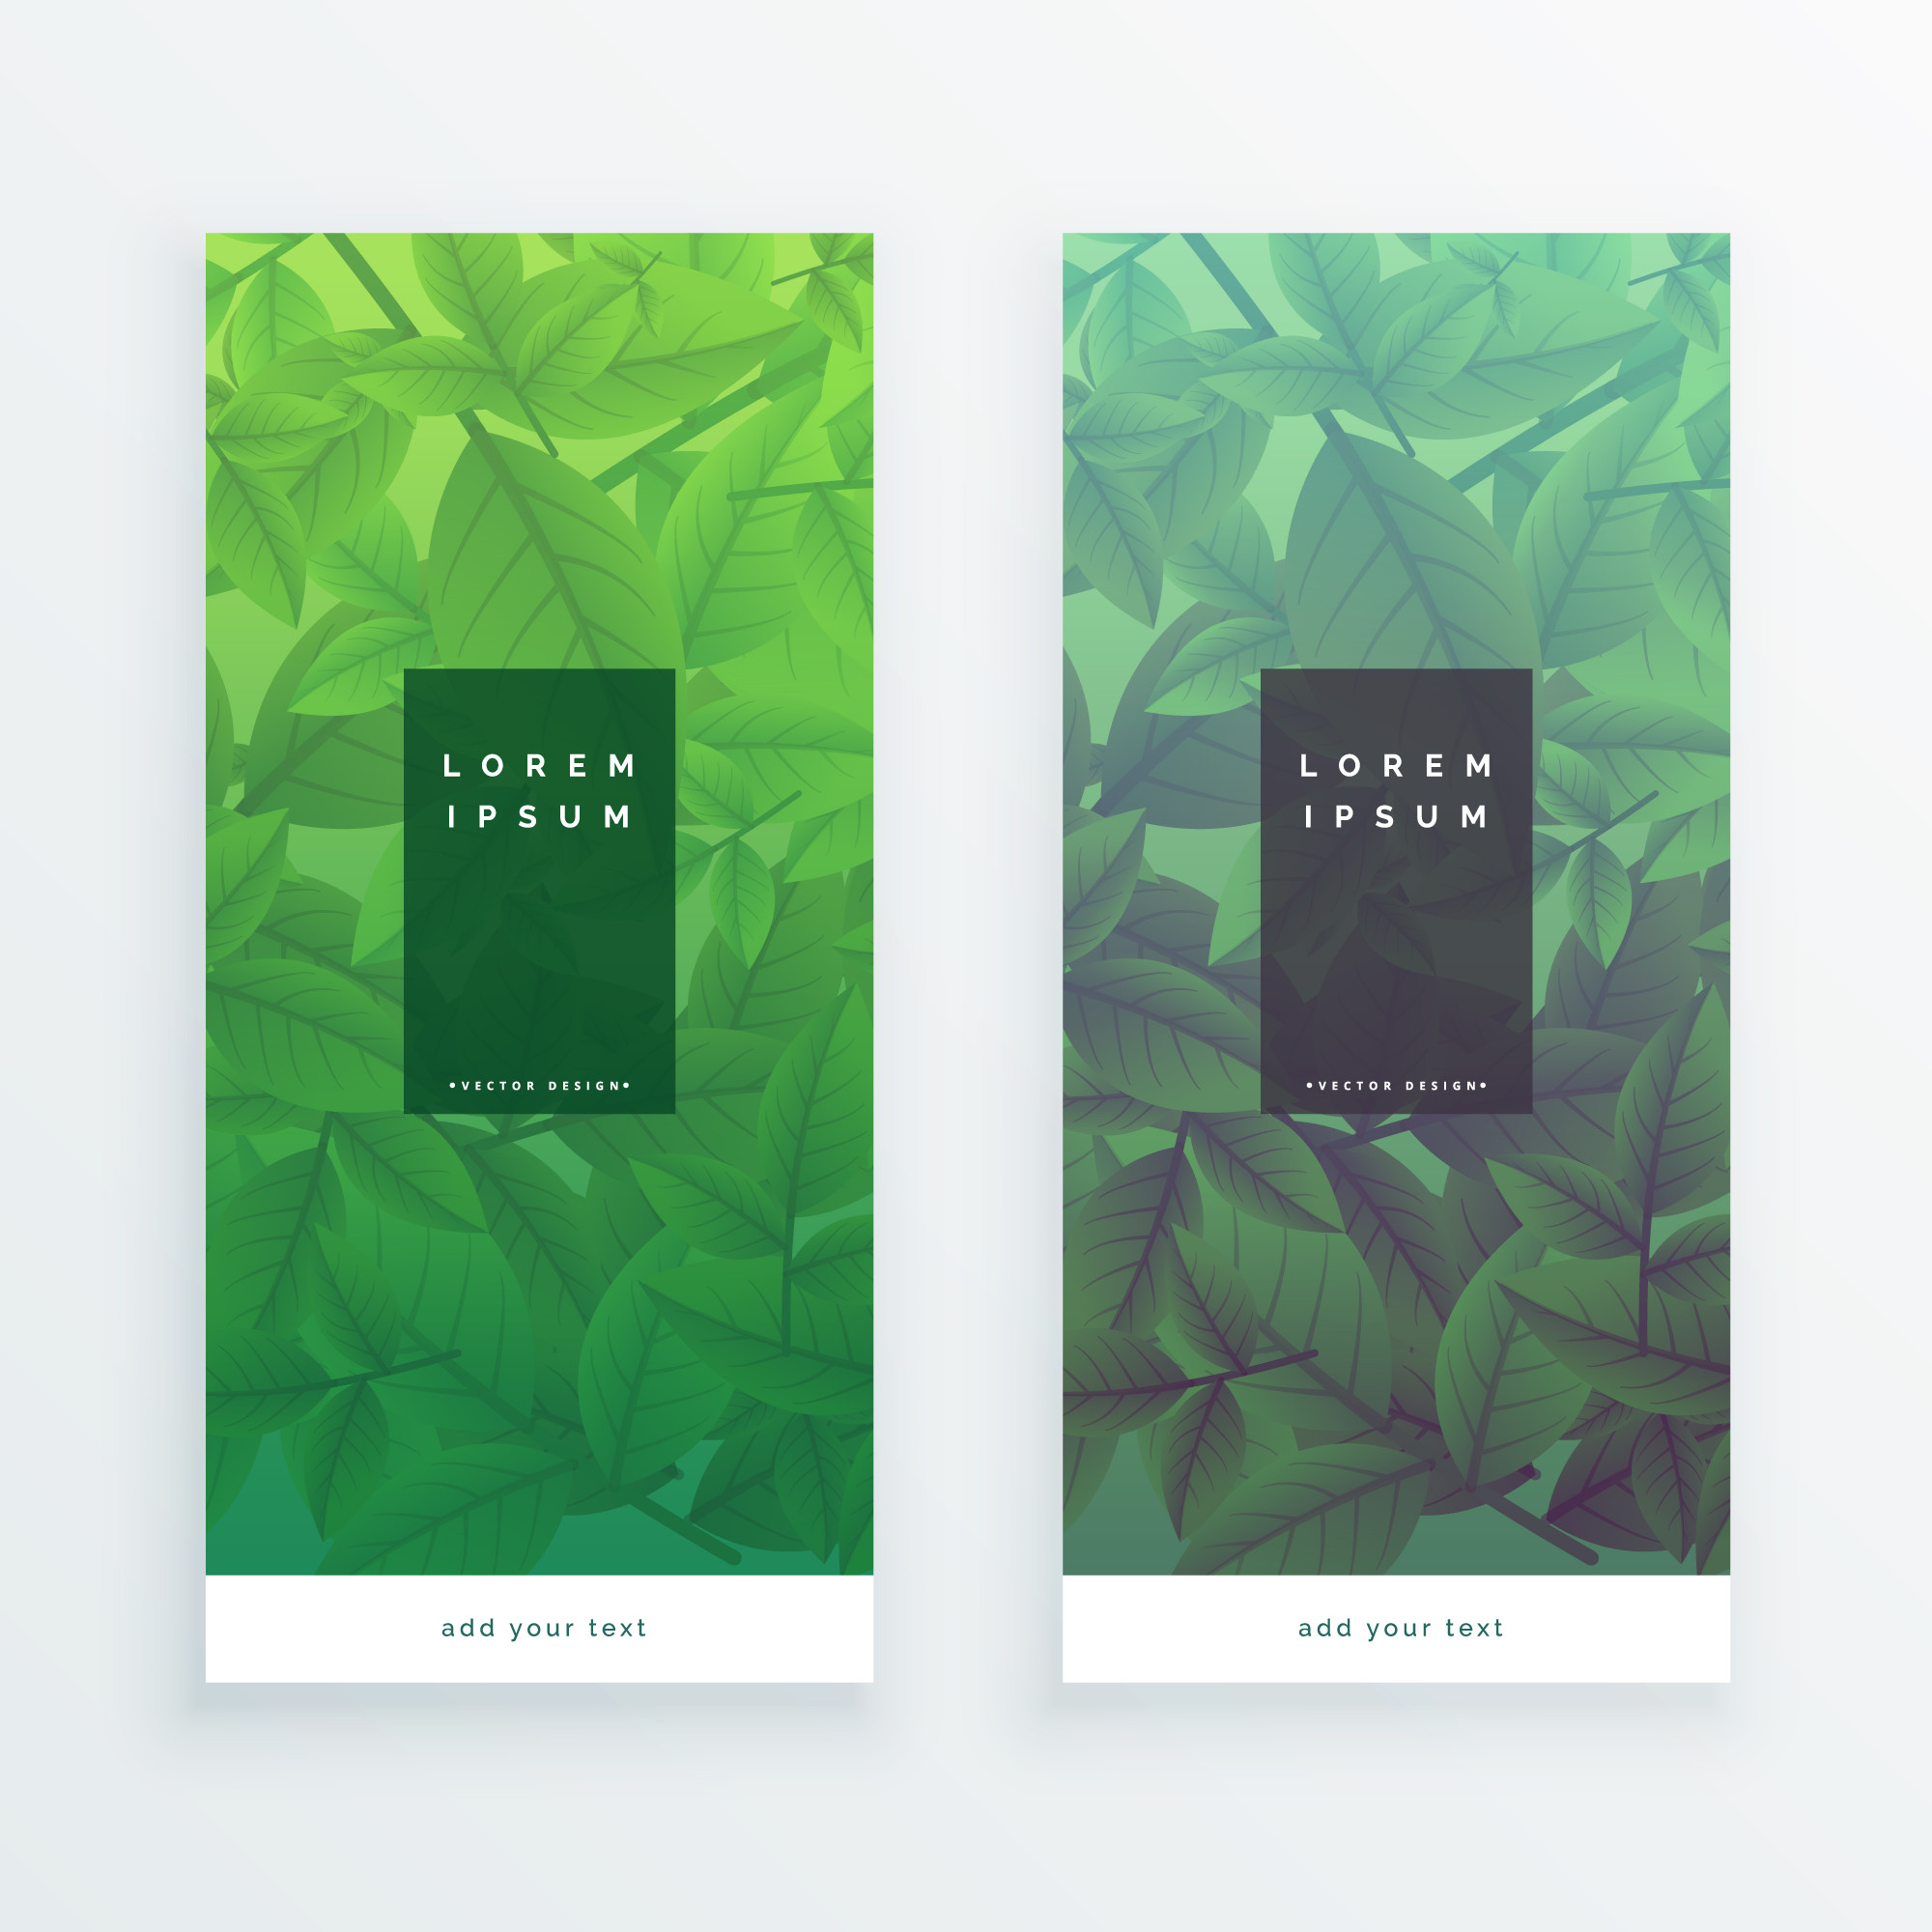 Vertical banners of green leaves